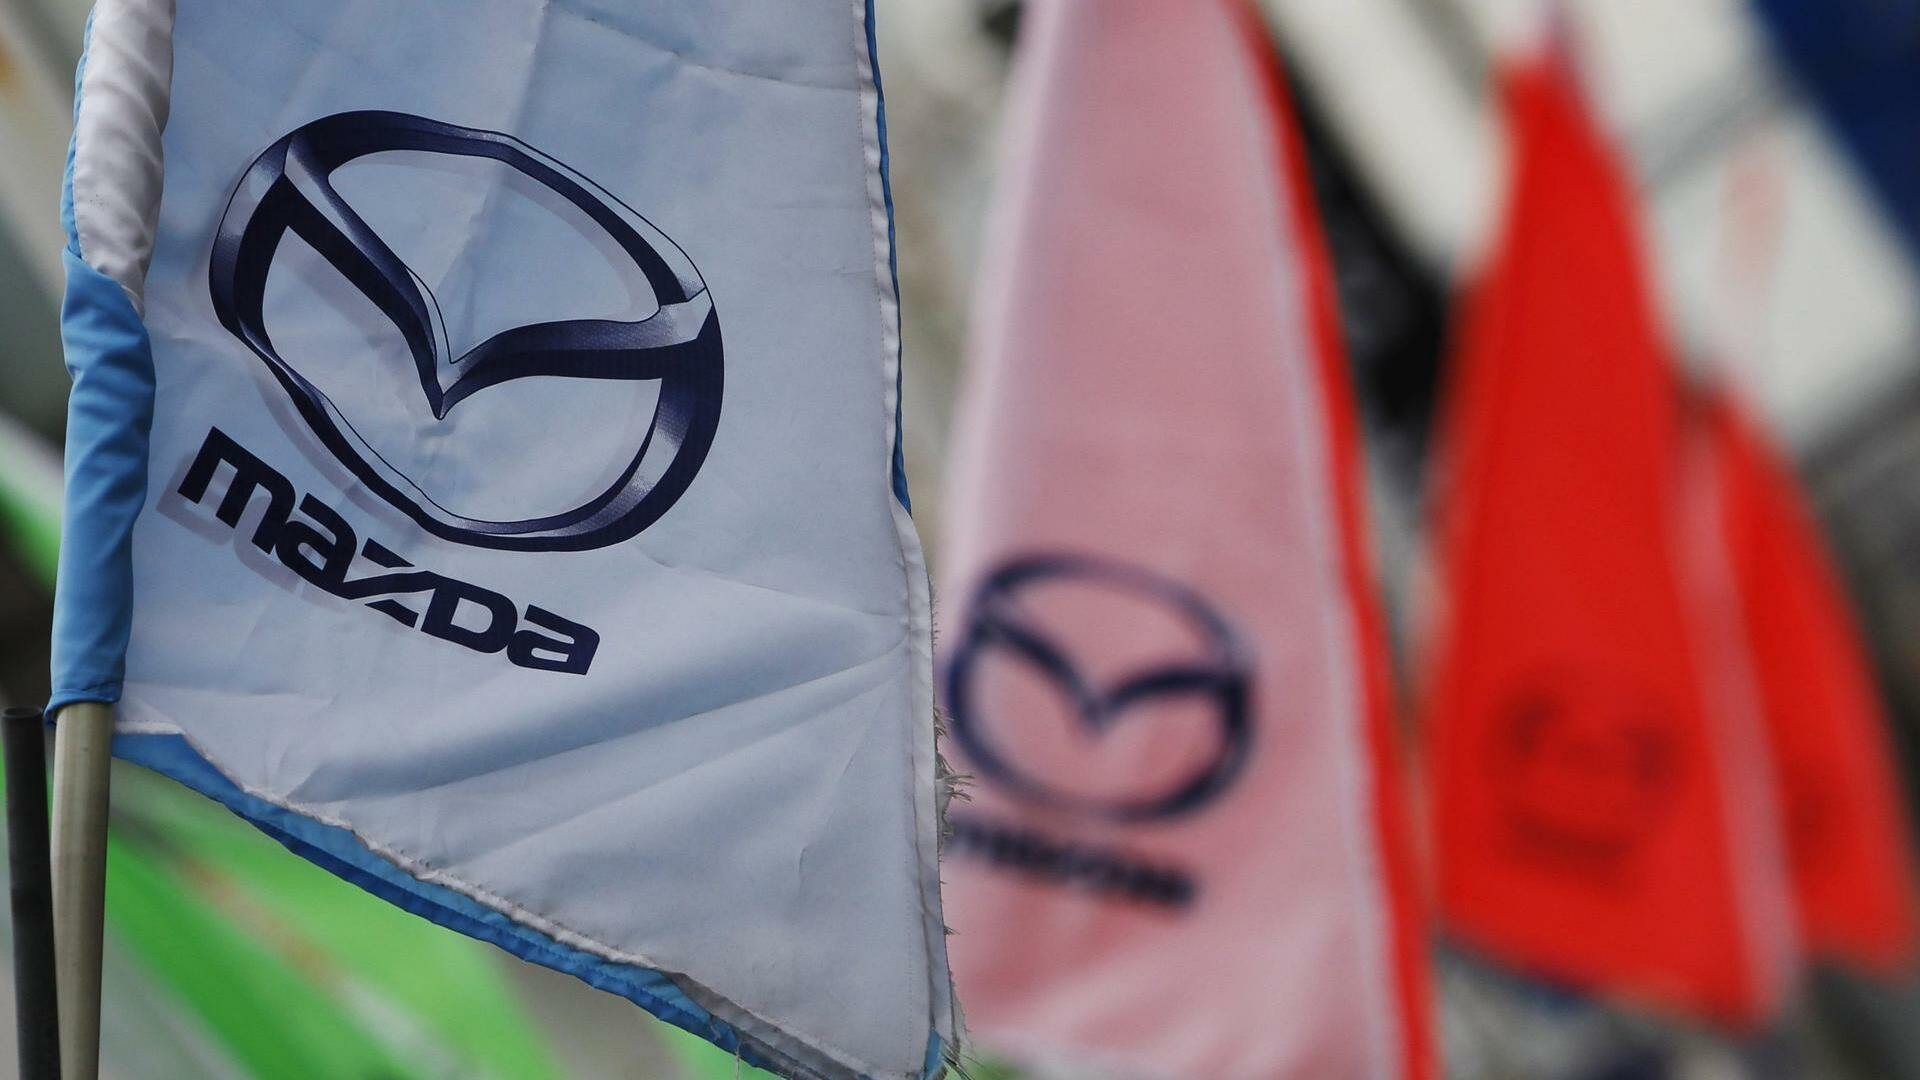 Logos of Mazda Motor Corp are seen at a dealership in Tokyo Quelle: REUTERS